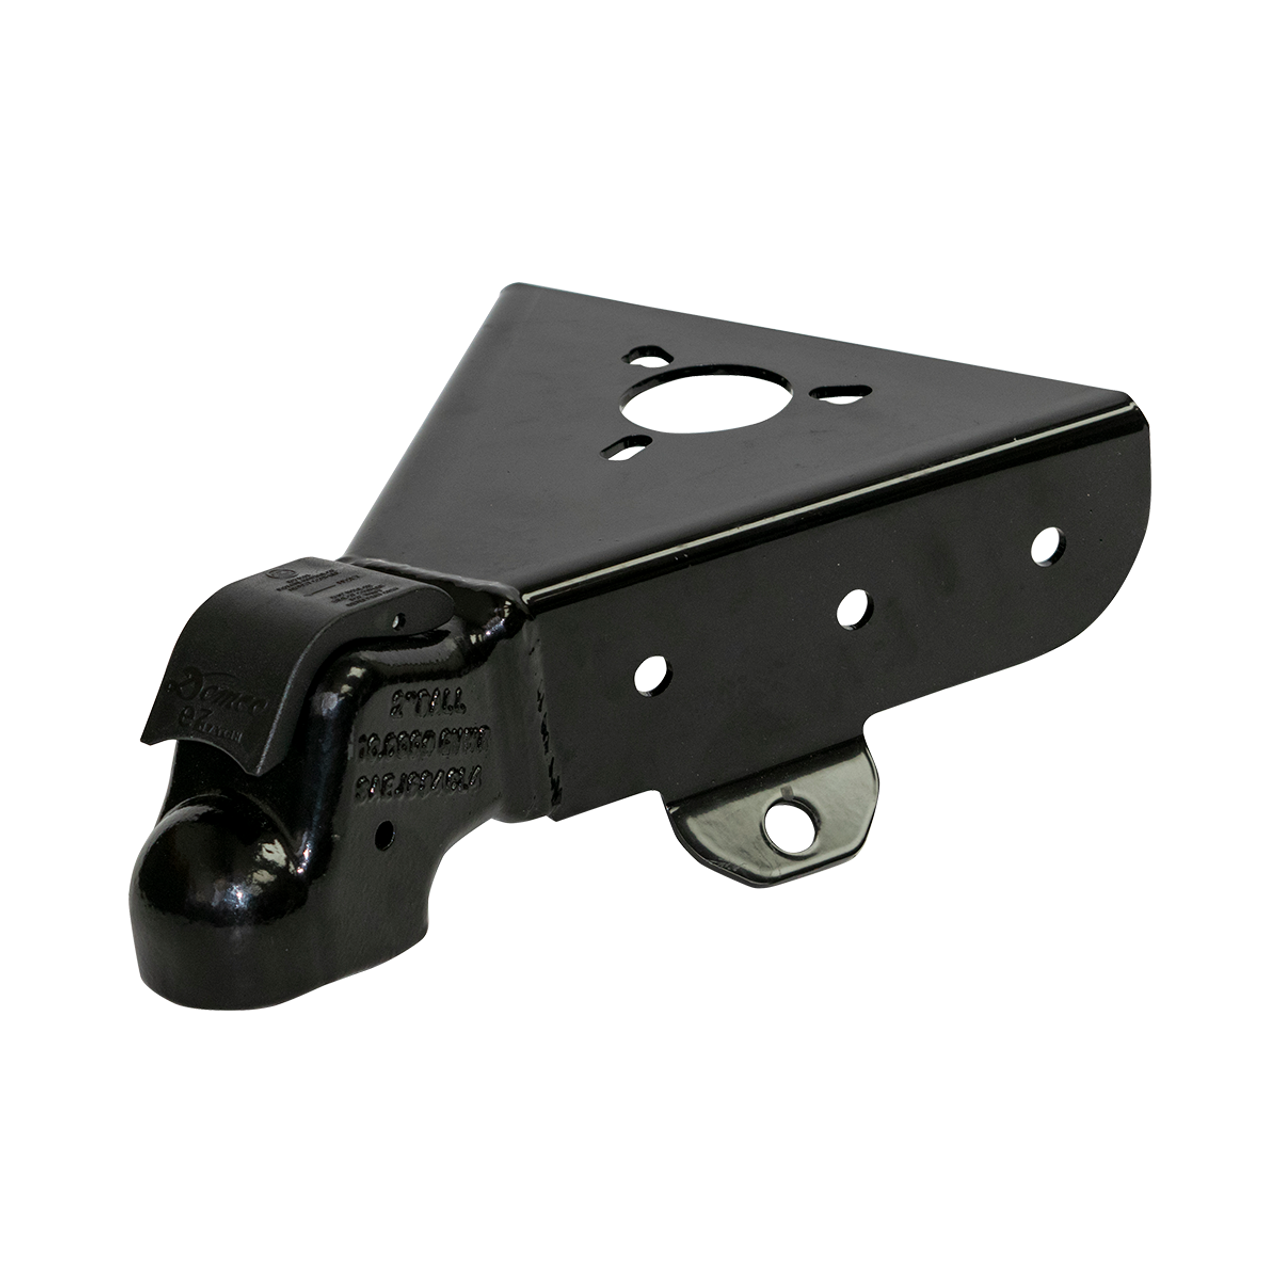 """16854-81 --- Demco A-Frame 2"""" Coupler with chain anchors - 10,000 lbs Capacity"""